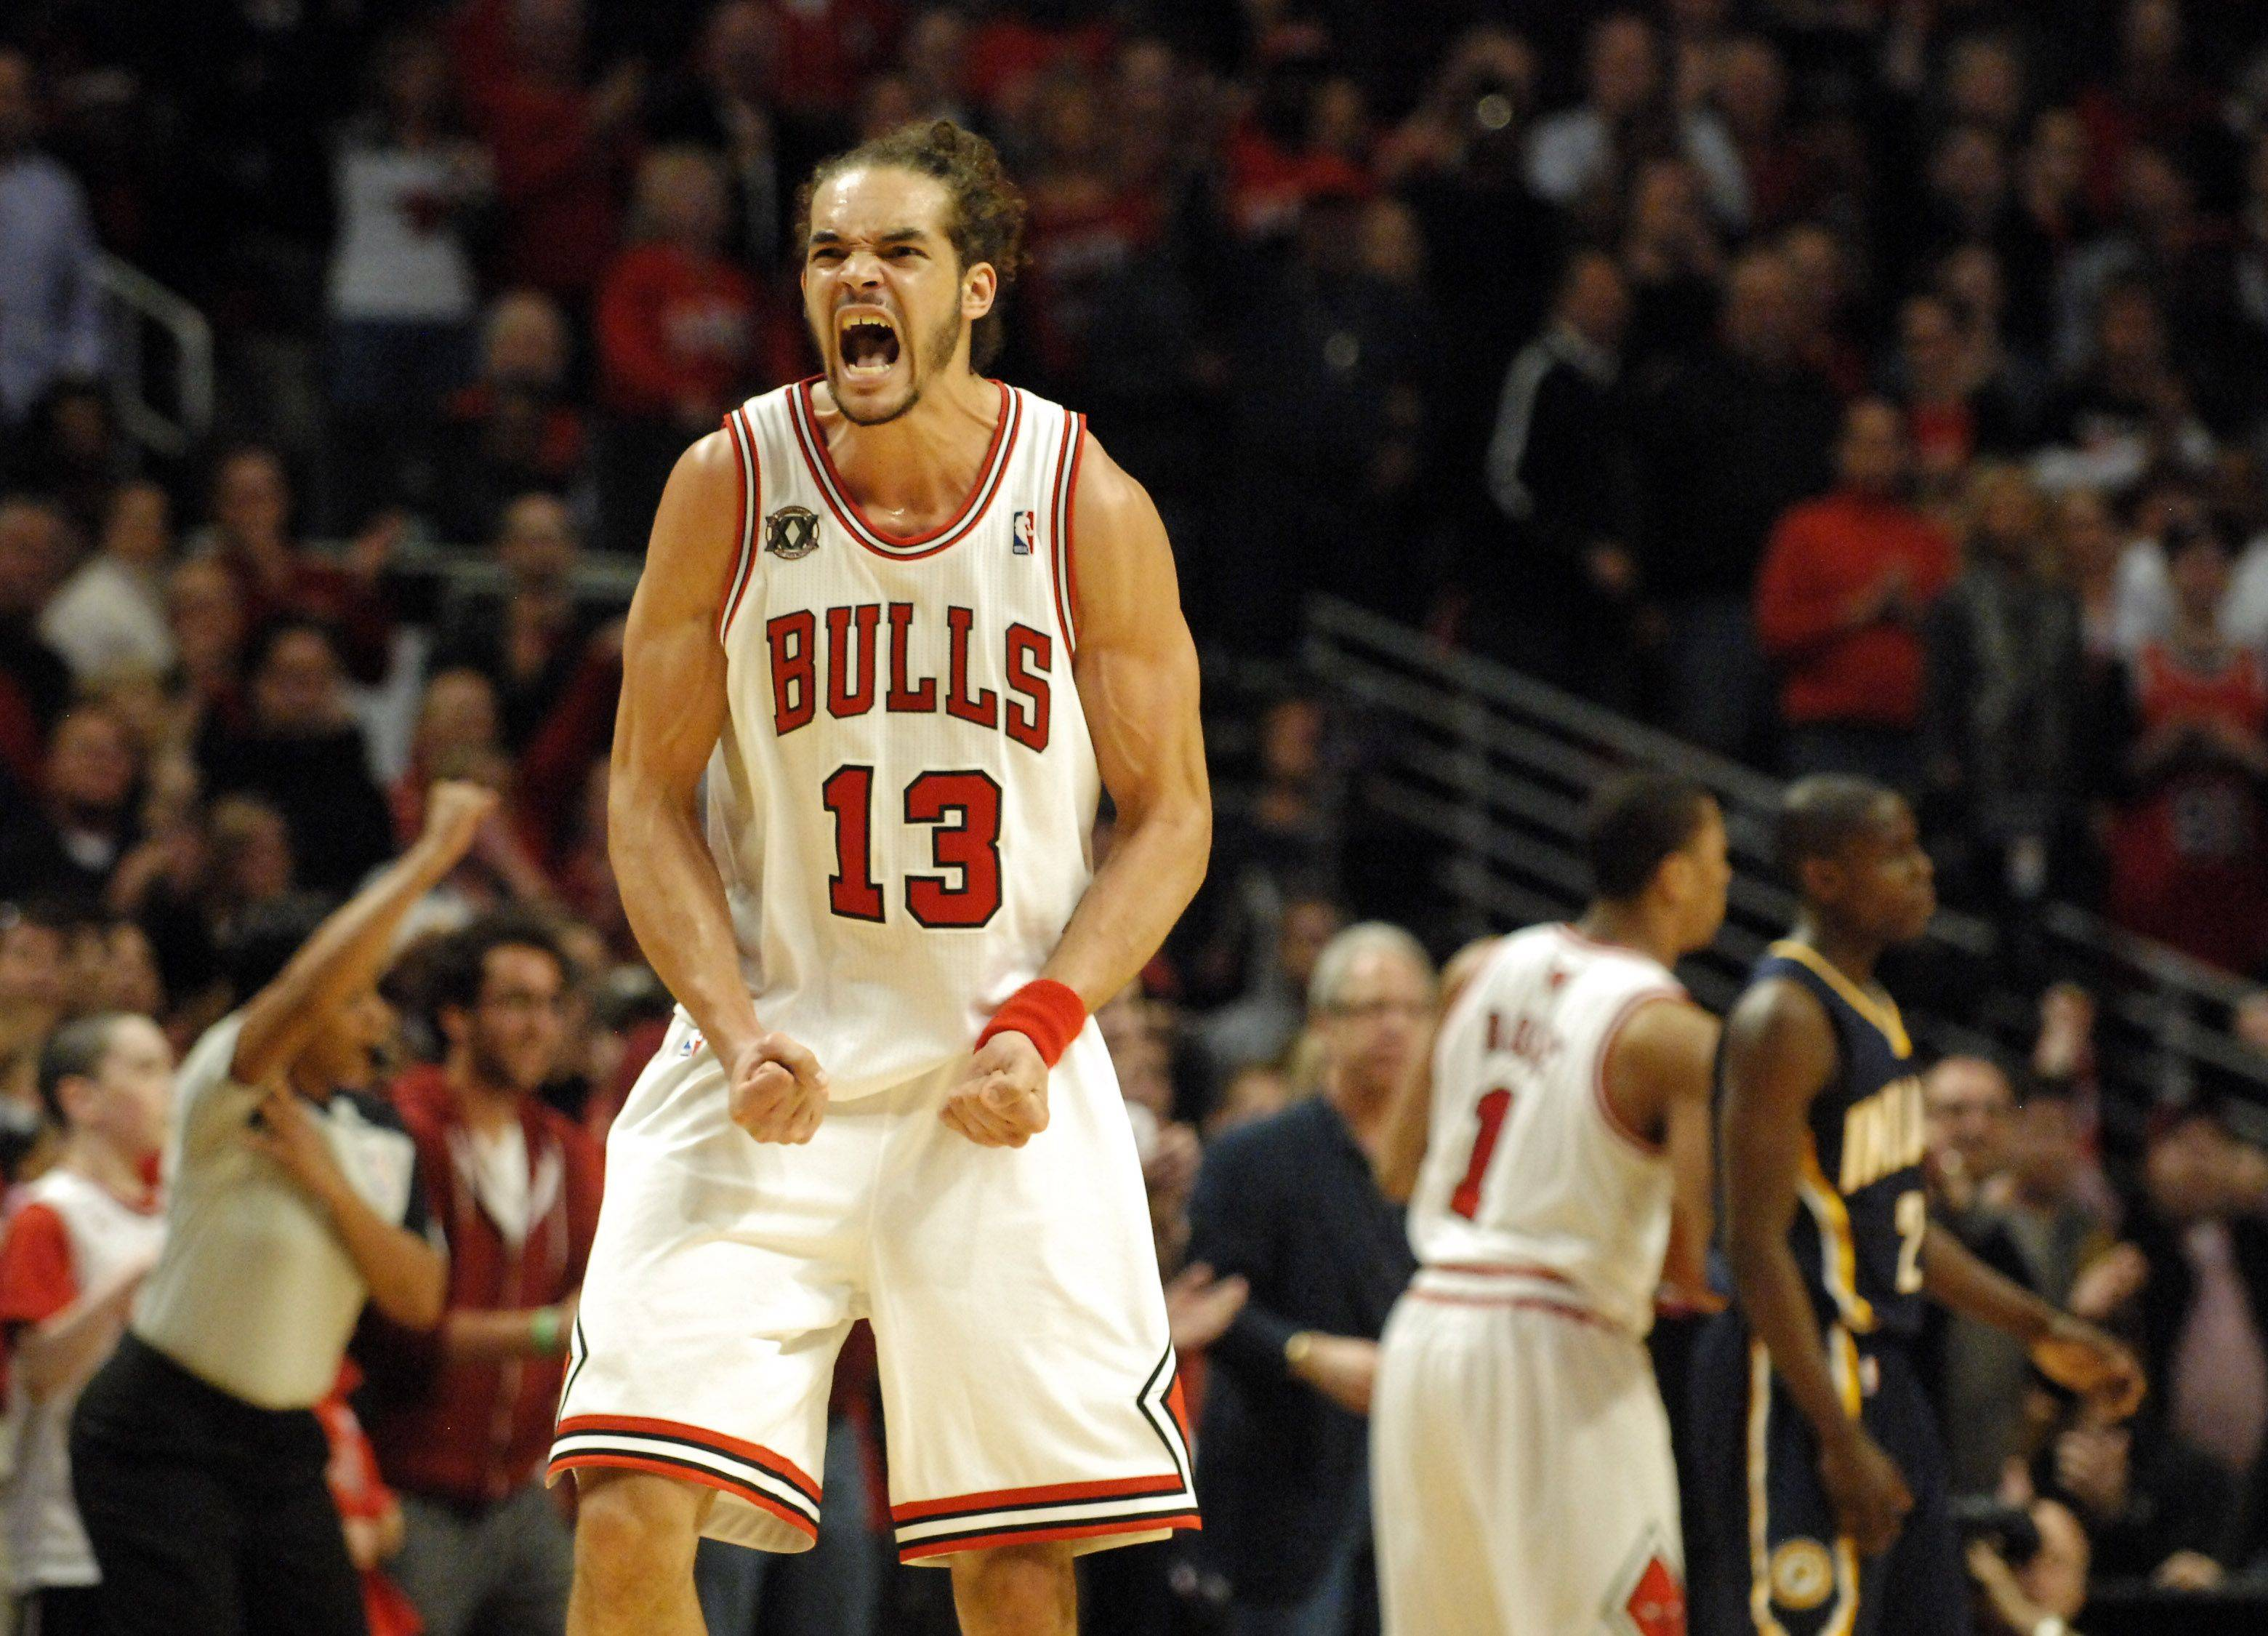 Chicago Bulls center Joakim Noah (13) celebrates after a foul of teammate Derrick Rose esentially ices the game against the Indiana Pacers during Game One of the NBA Eastern Conference Quarterfinals Saturday at the United Center in Chicago.